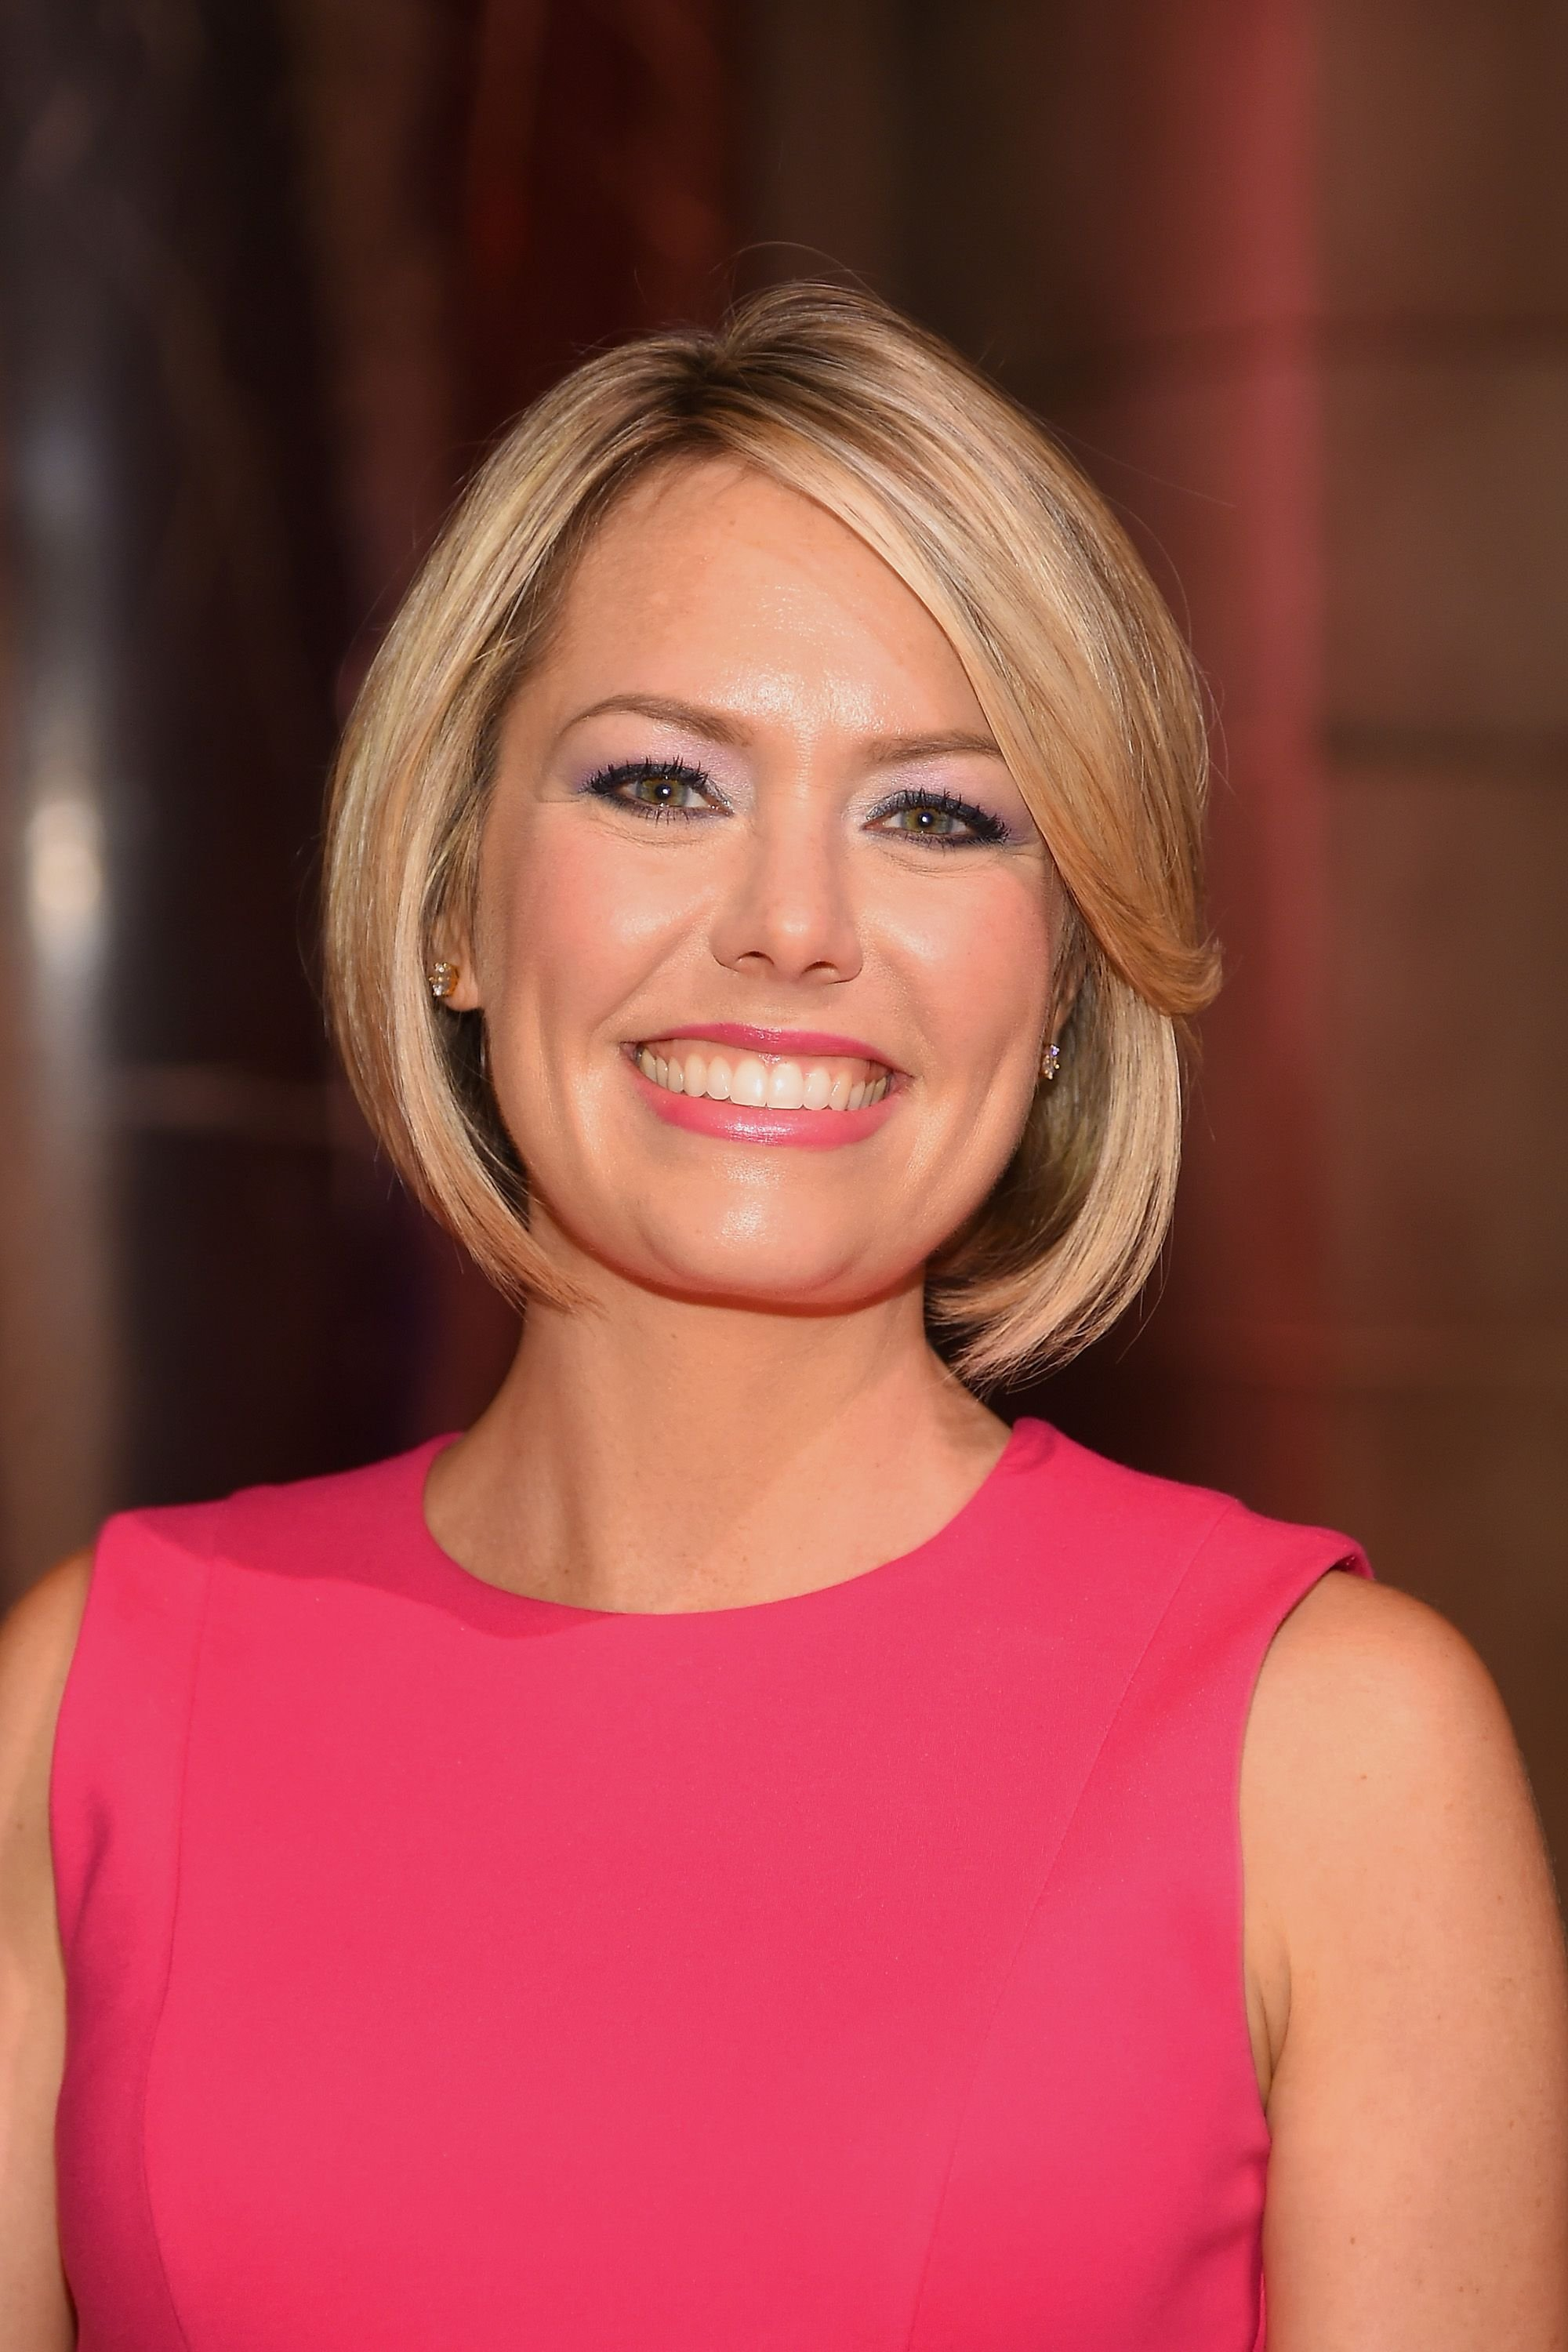 Dylan Dreyer at the 42nd Annual Gracie Awards Luncheon at Cipriani 42nd Street on June 27, 2017 in New York City  | Photo: Getty Images.